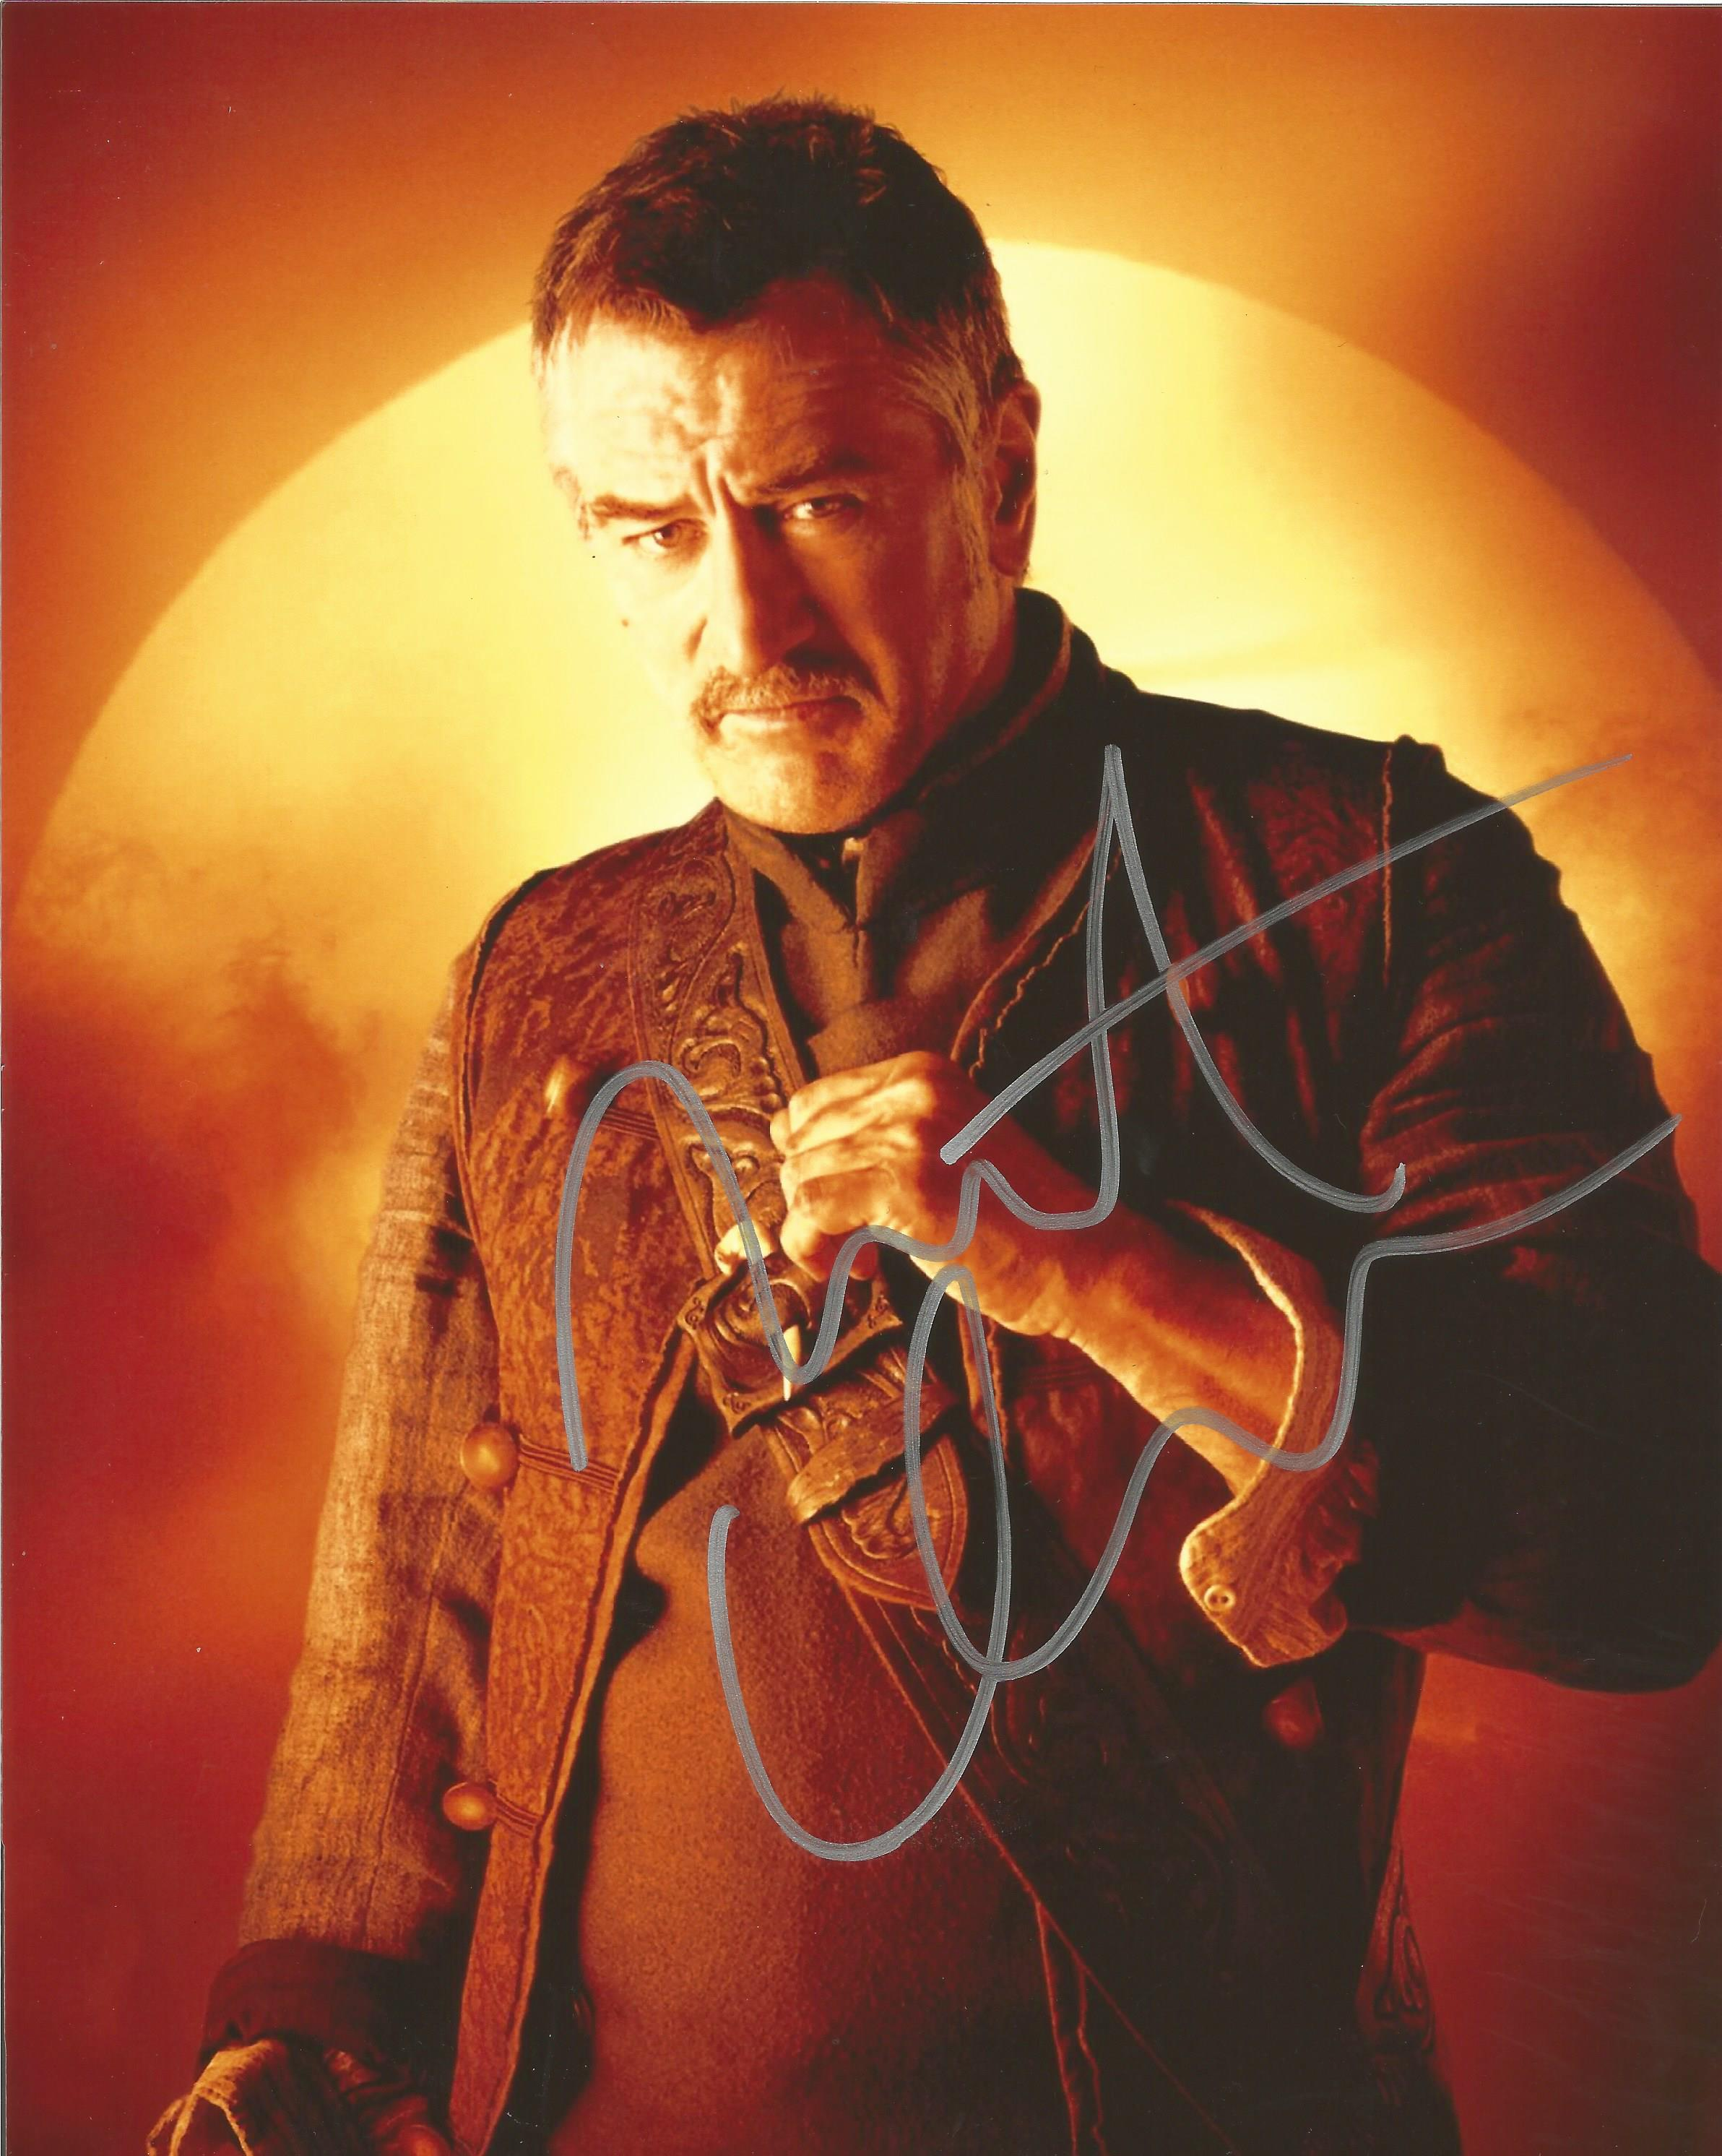 Lot 40 - Robert DeNiro signed 10 x 8 colour Stardust Portrait Photo, from in person collection autographed at